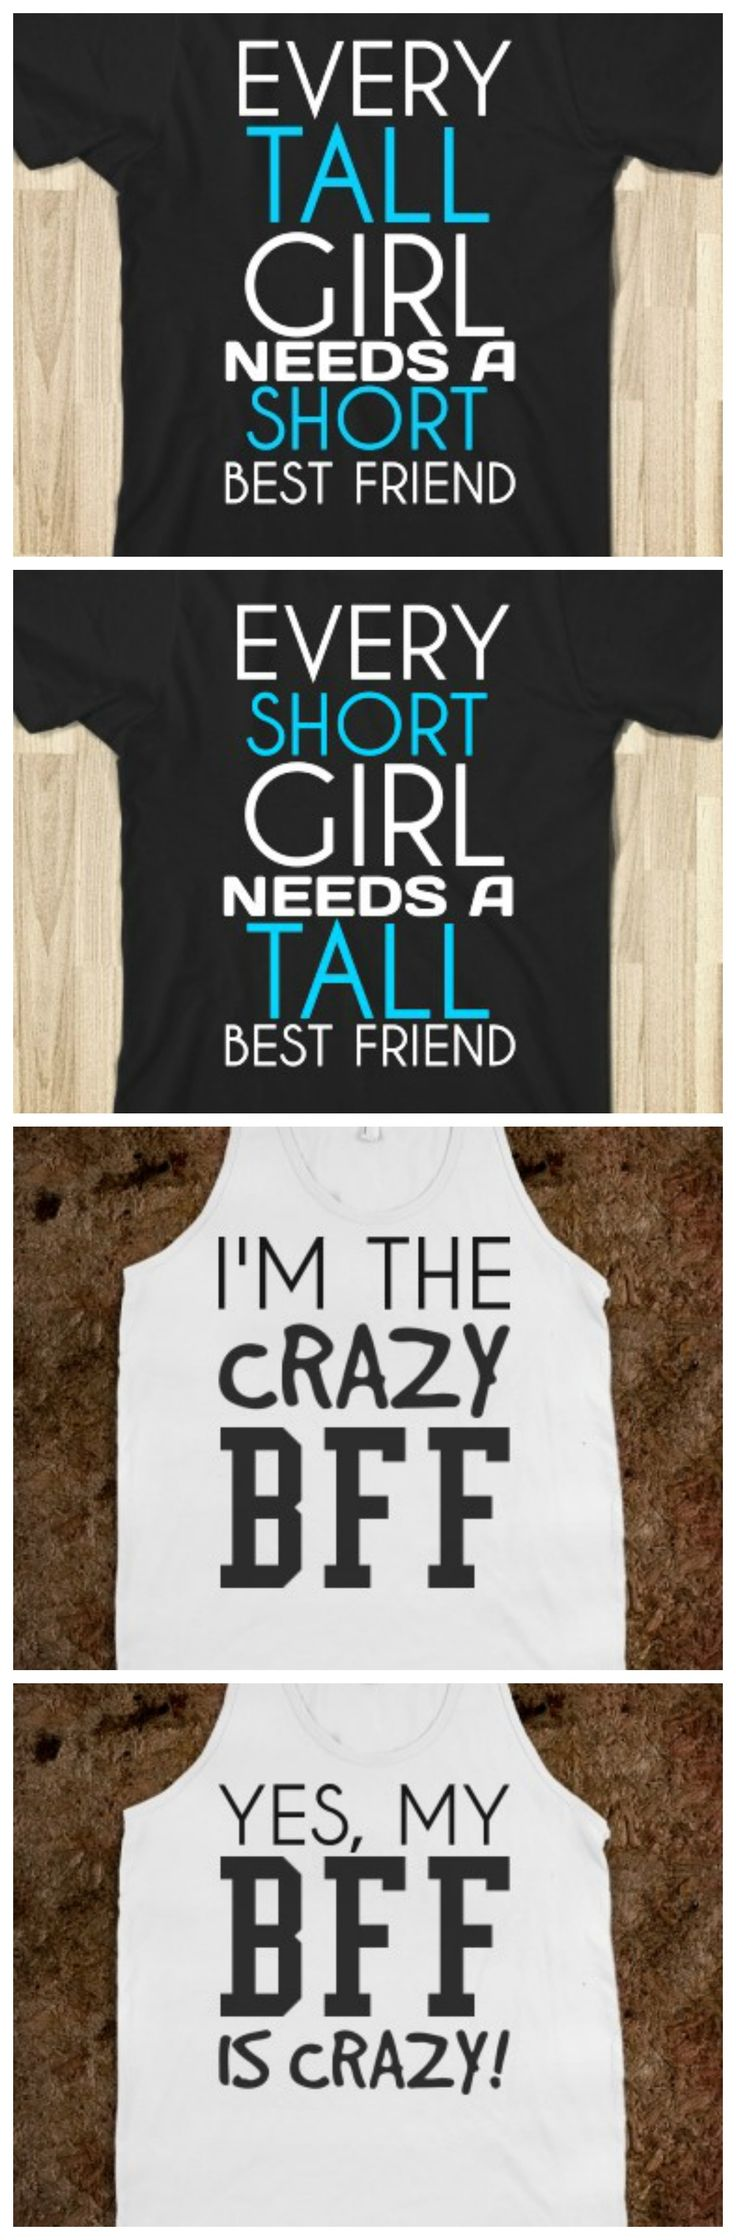 Funny best friends t shirts humor pinterest for This guy has an awesome girlfriend shirt